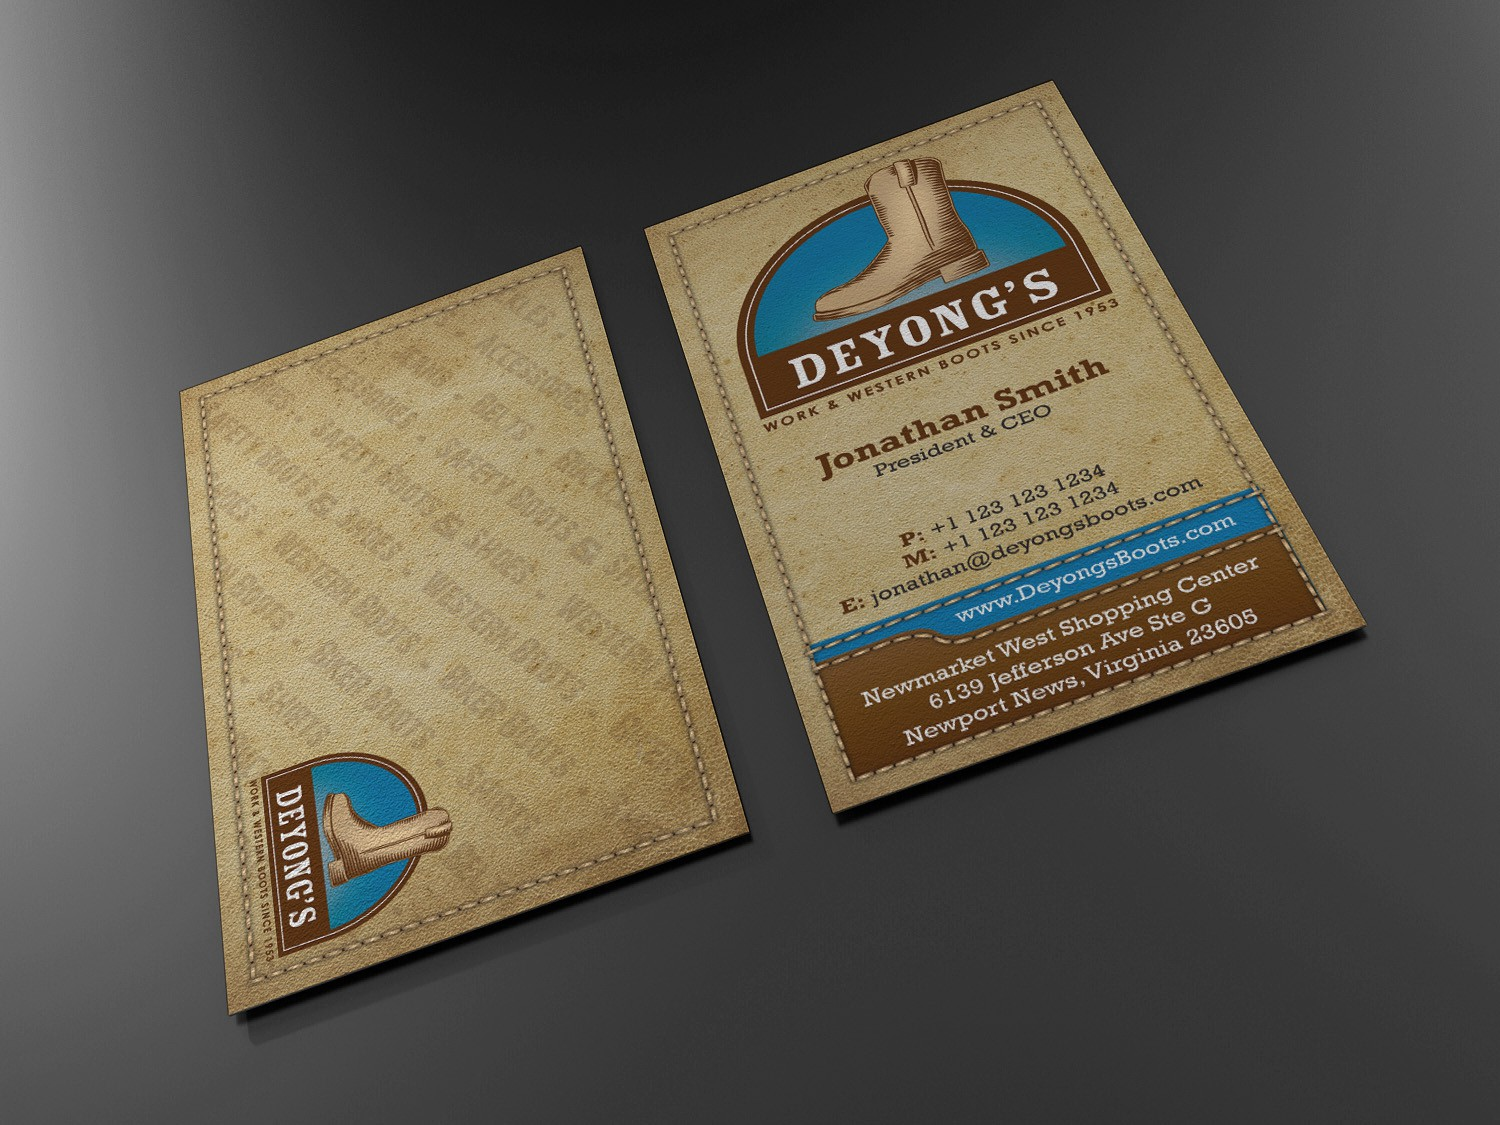 New business card wanted for Deyong's